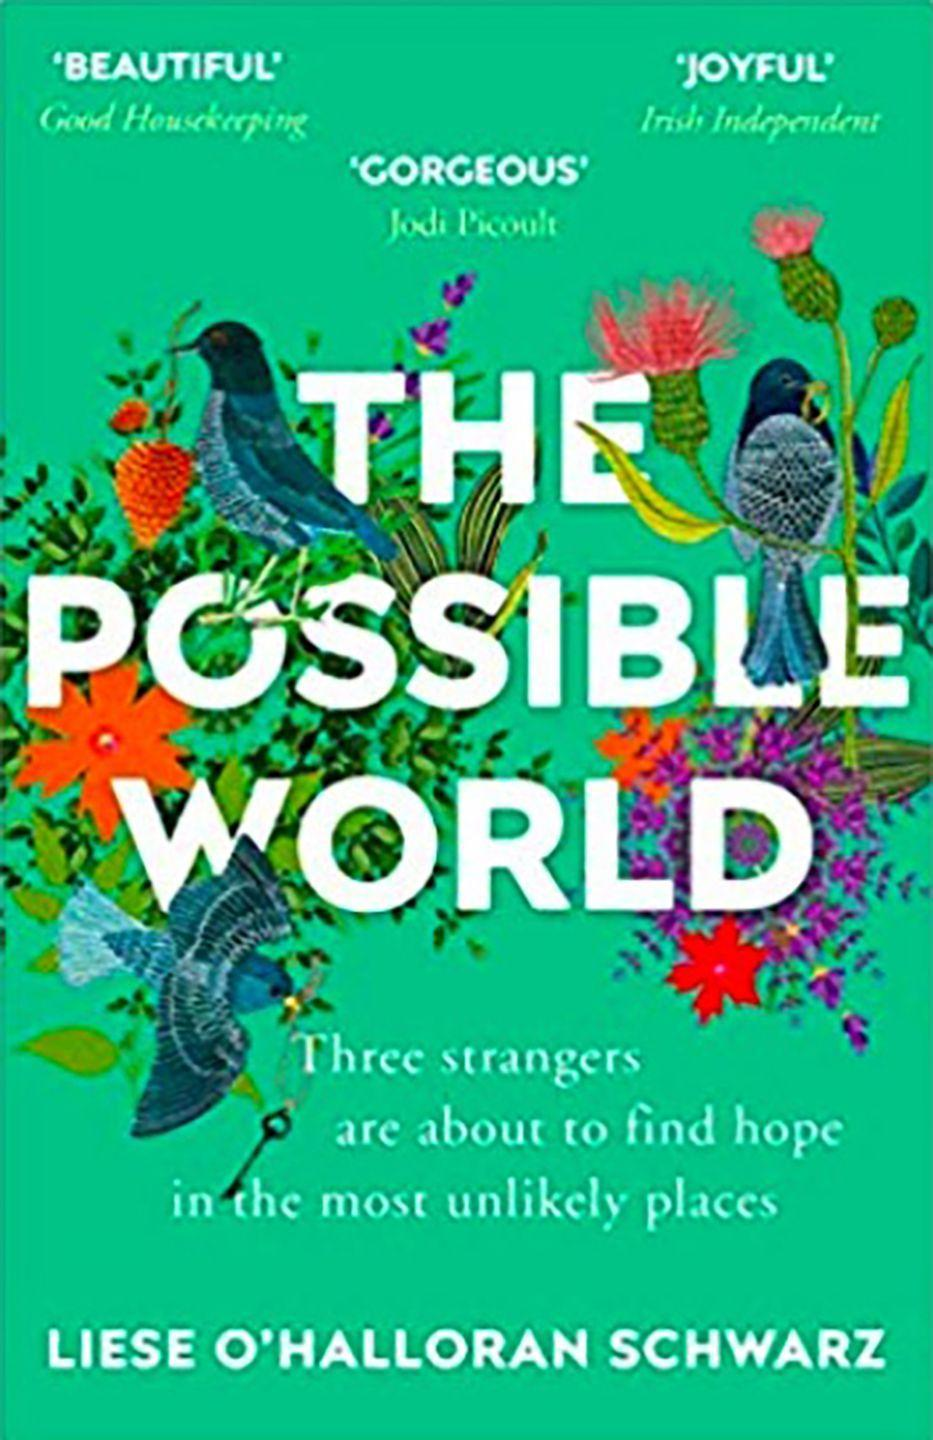 """<p><a class=""""link rapid-noclick-resp"""" href=""""https://www.amazon.co.uk/Possible-World-Liese-OHalloran-Schwarz/dp/1784757322/ref=sr_1_1?keywords=The+Possible+World+by+Liese+O%27Halloran+Schwarz+%28&qid=1567162272&s=gateway&sr=8-1&tag=hearstuk-yahoo-21&ascsubtag=%5Bartid%7C1919.g.15922606%5Bsrc%7Cyahoo-uk"""" rel=""""nofollow noopener"""" target=""""_blank"""" data-ylk=""""slk:SHOP NOW"""">SHOP NOW</a> £8.46, Amazon</p><p>Six-year-old Ben is the sole survivor of a crime which claims his mother. Lucy is the doctor who tends to the child while he recovers, while Clare is desperately trying to stop her lifetime of secrets from coming unstuck. As they all grapple with their own personal events, fate works to bring them together - proving you can find hope in the most unlikely places. </p>"""